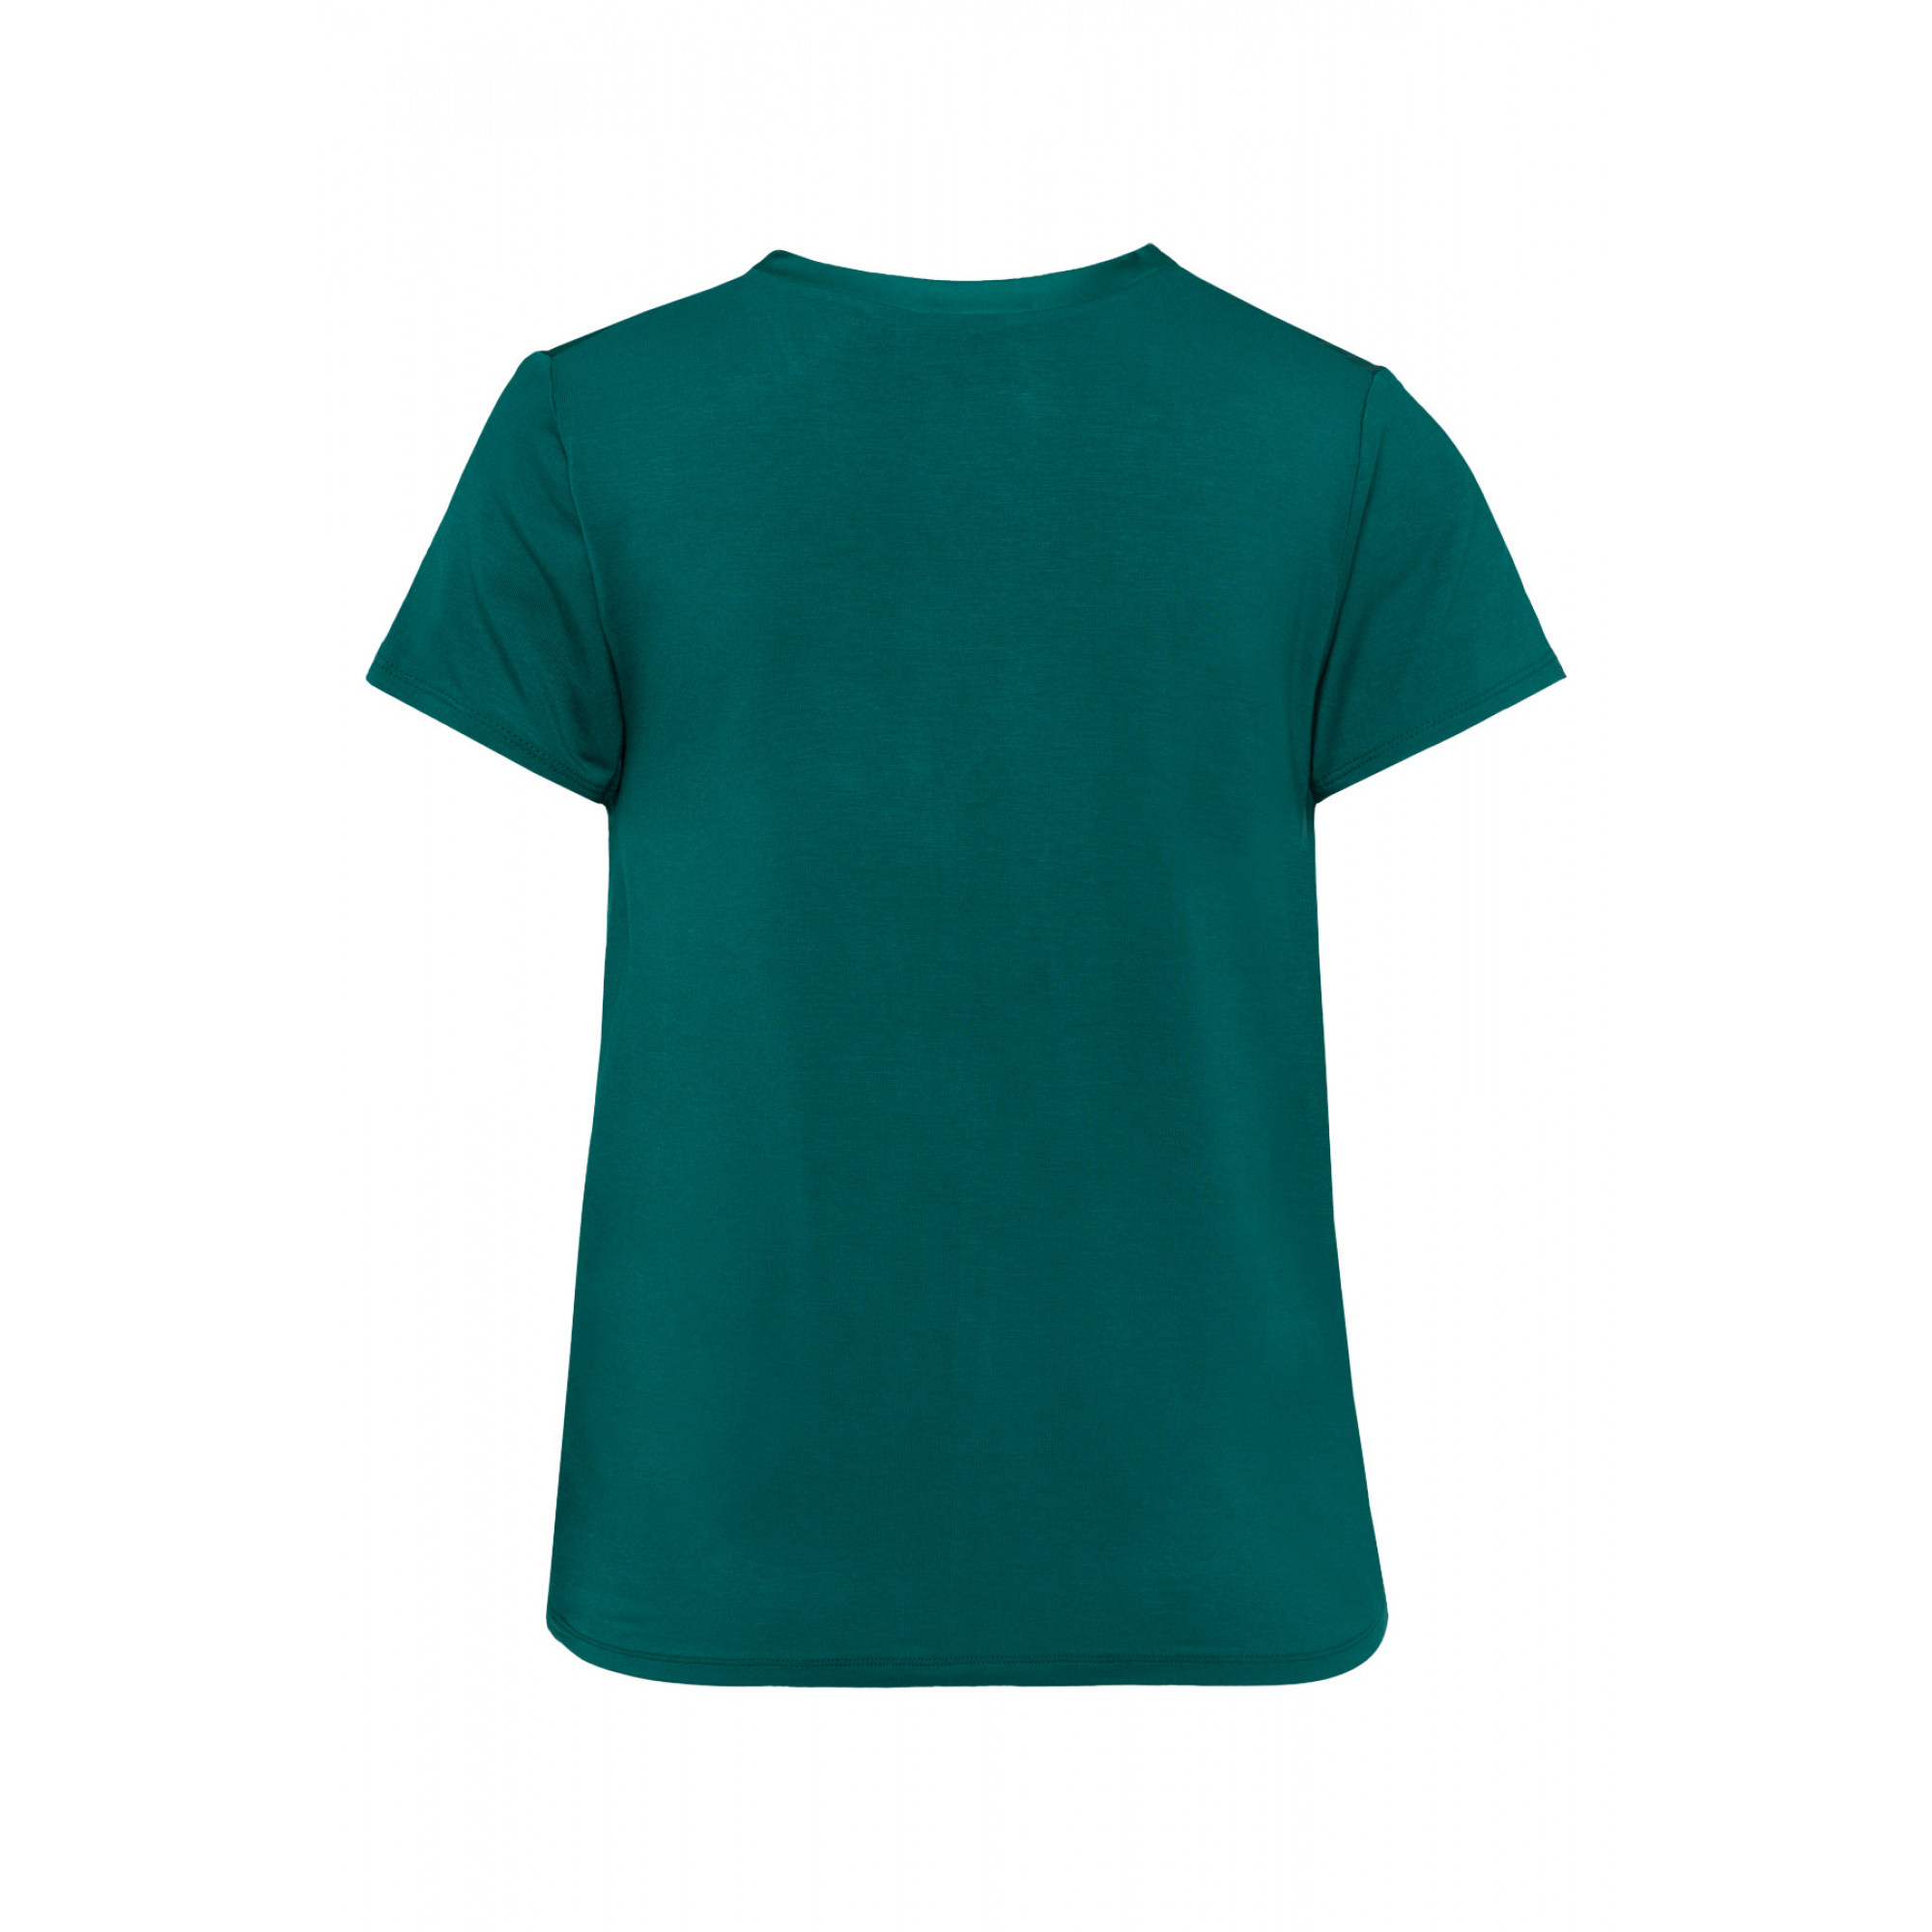 Blusenshirt, Satinfront, emerald green 91090555-0655 2